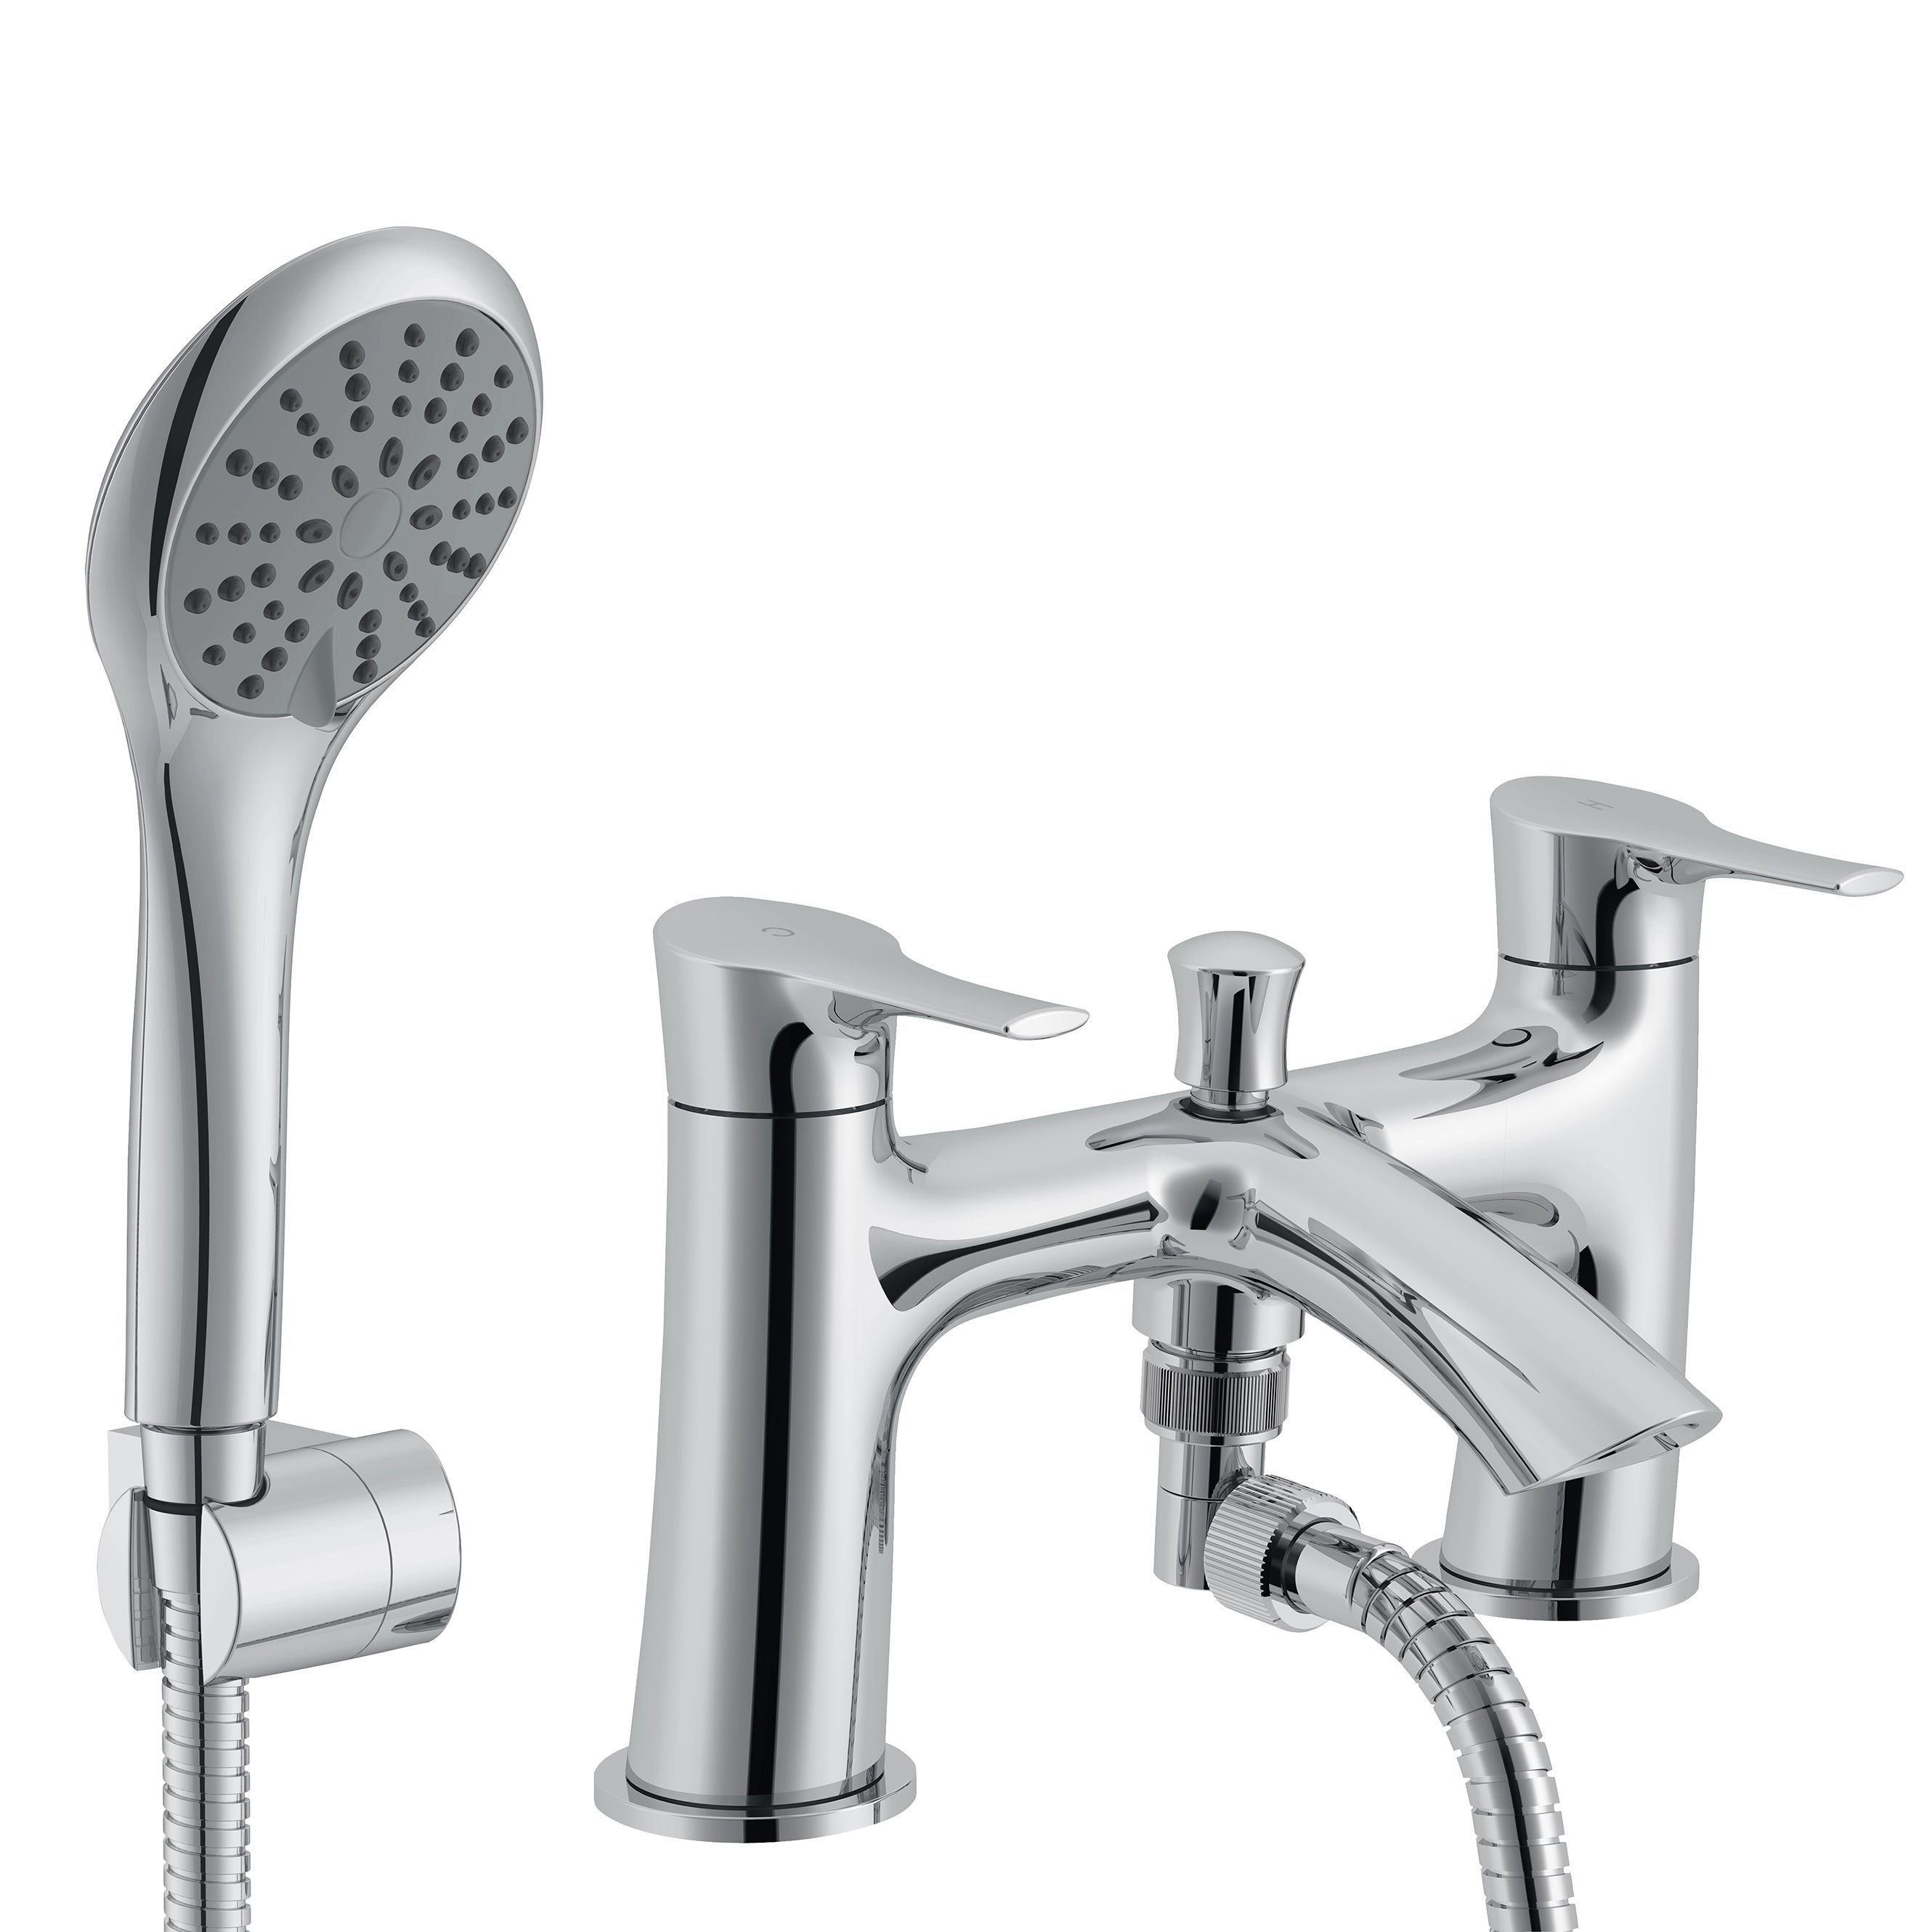 Cooke & Lewis Oceanspray Chrome Bath Shower Mixer Tap | Bath shower ...